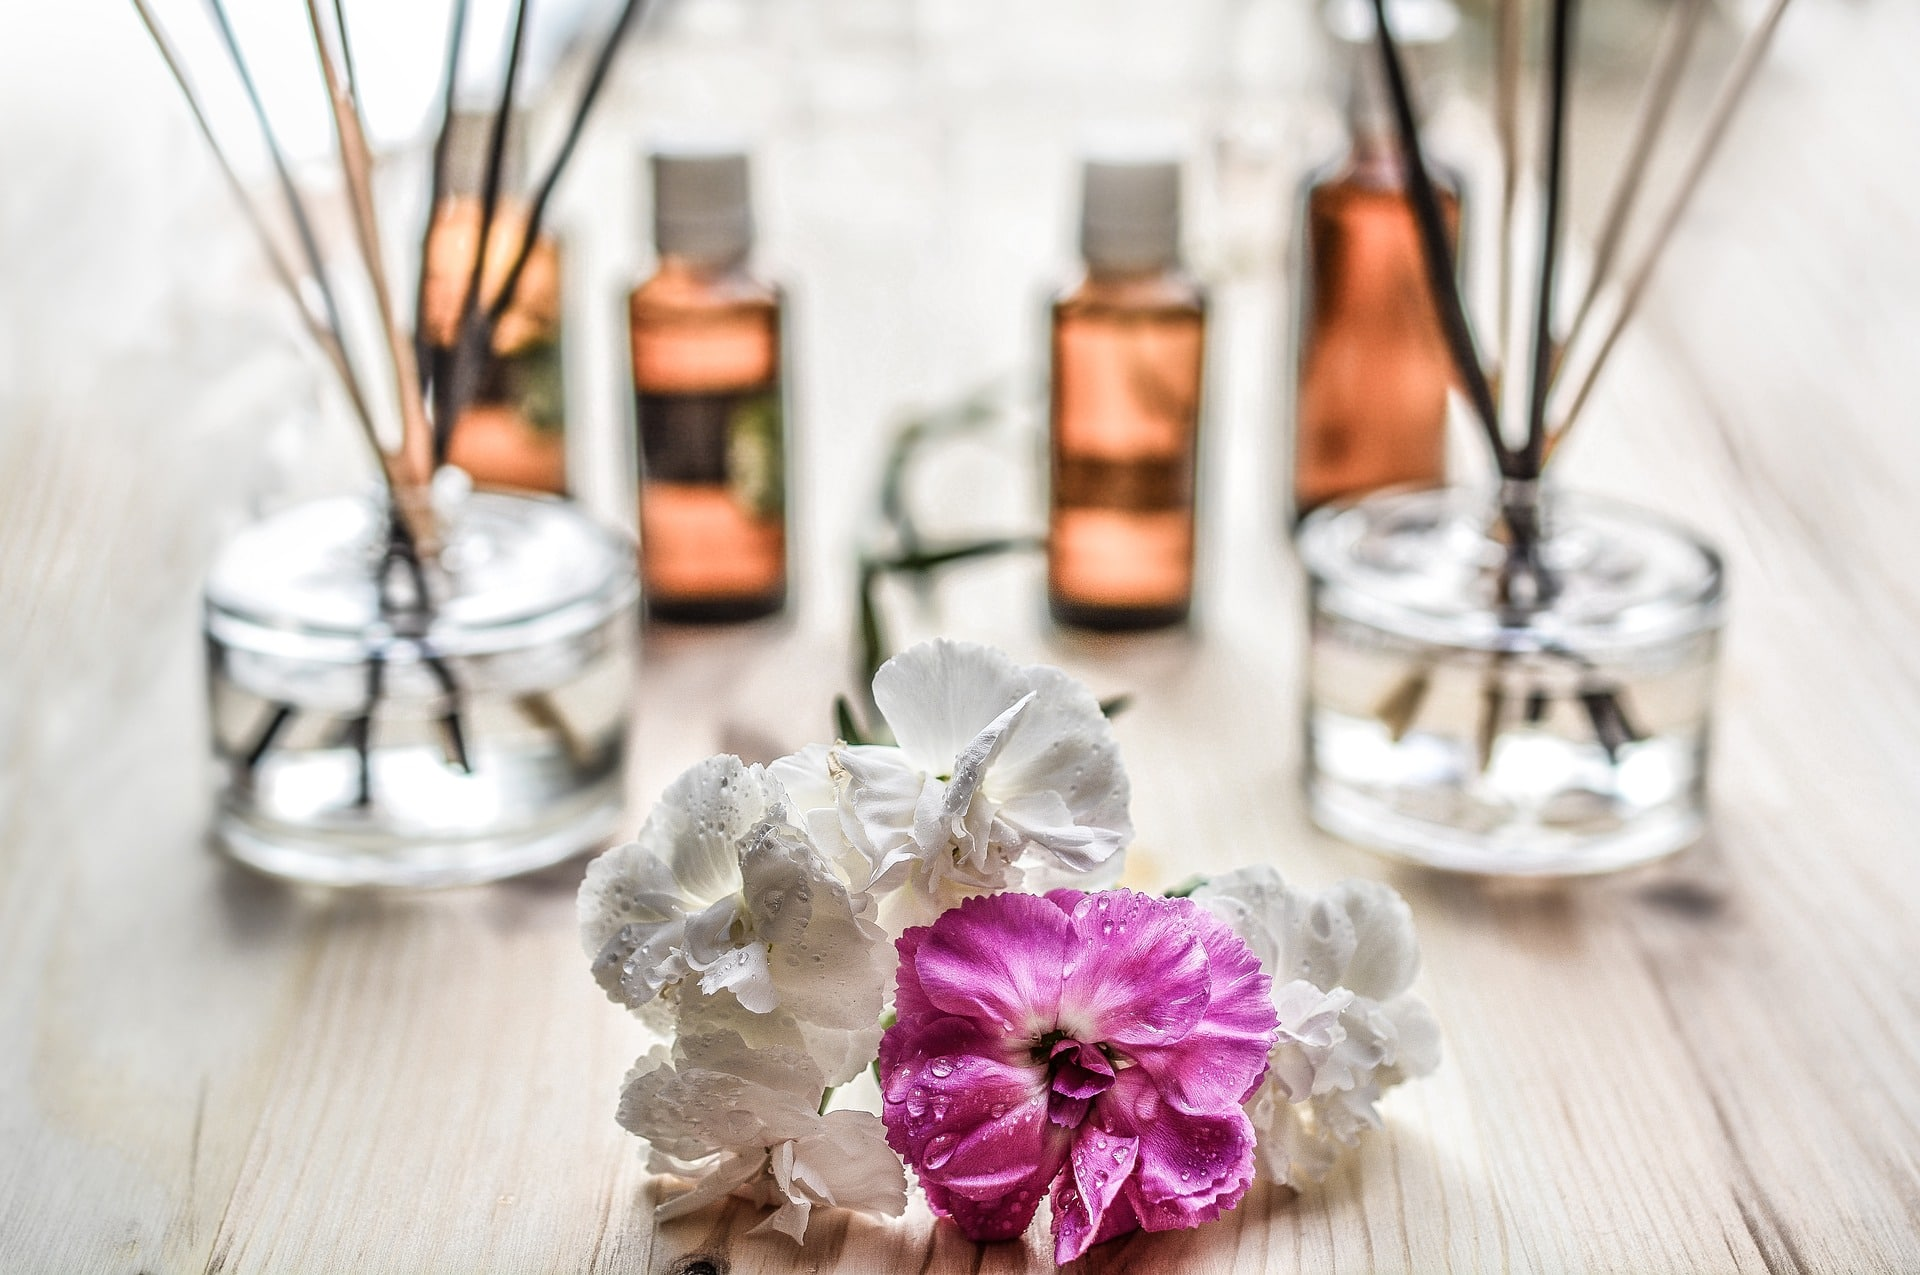 The Best Home Fragrance Oils To Create A Relaxing Ambiance Right Now